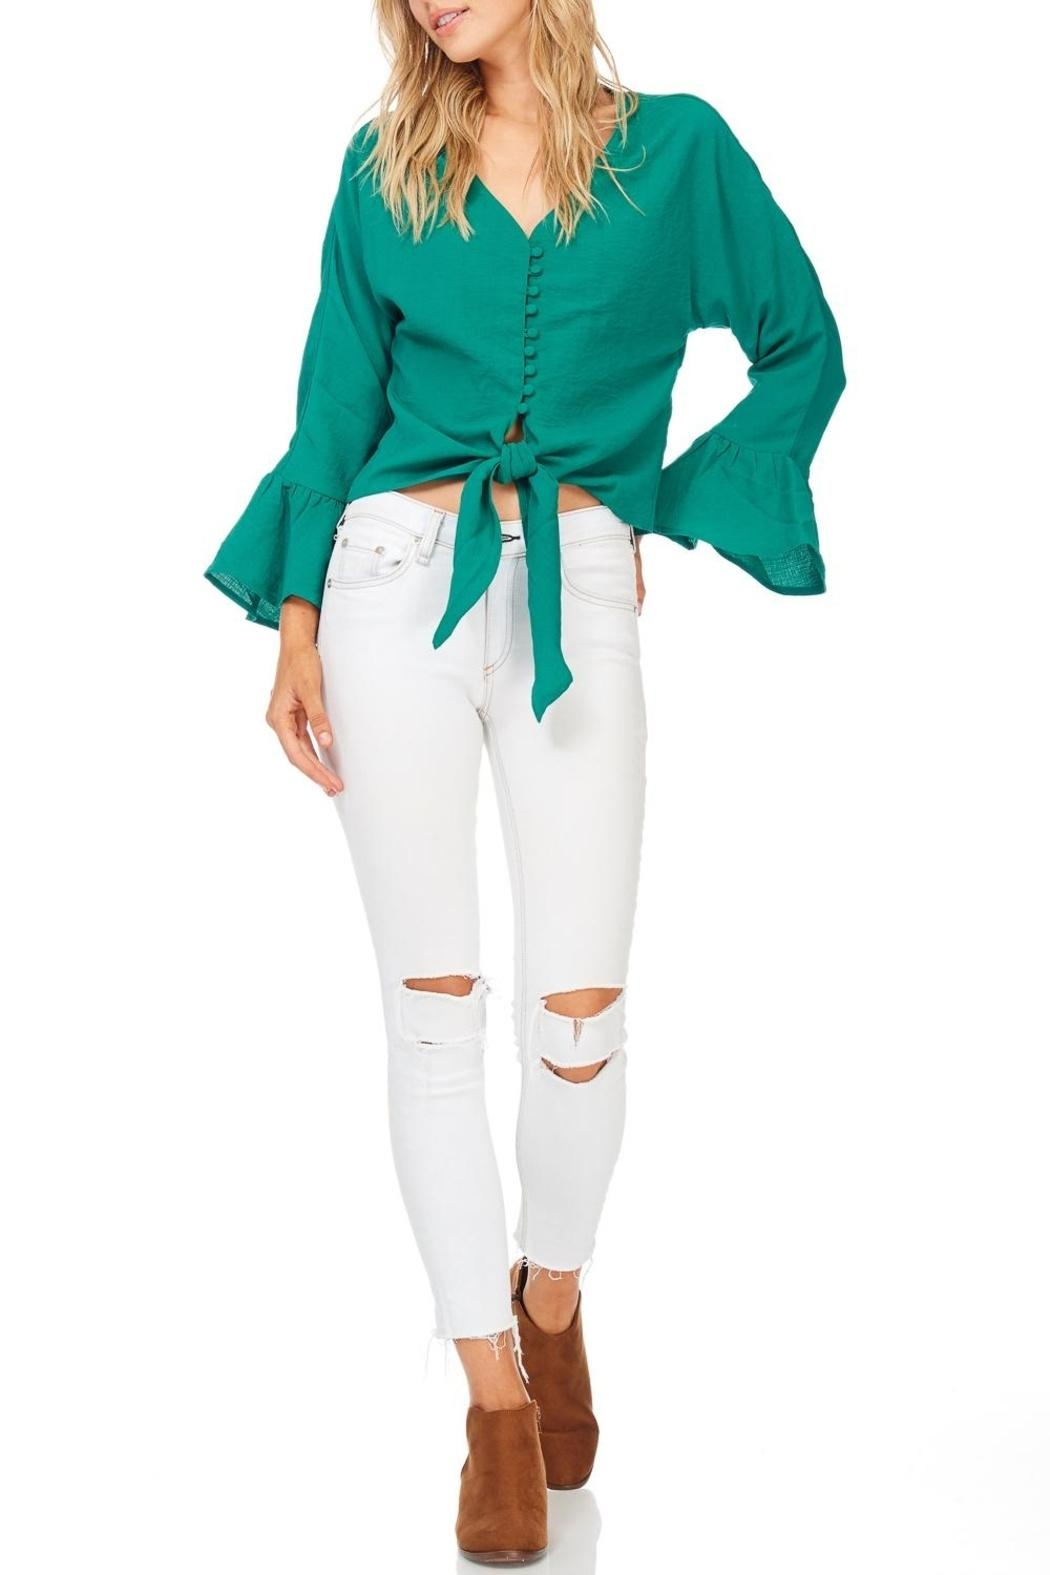 Miss Love Green Front Tie Blouse - Front Cropped Image